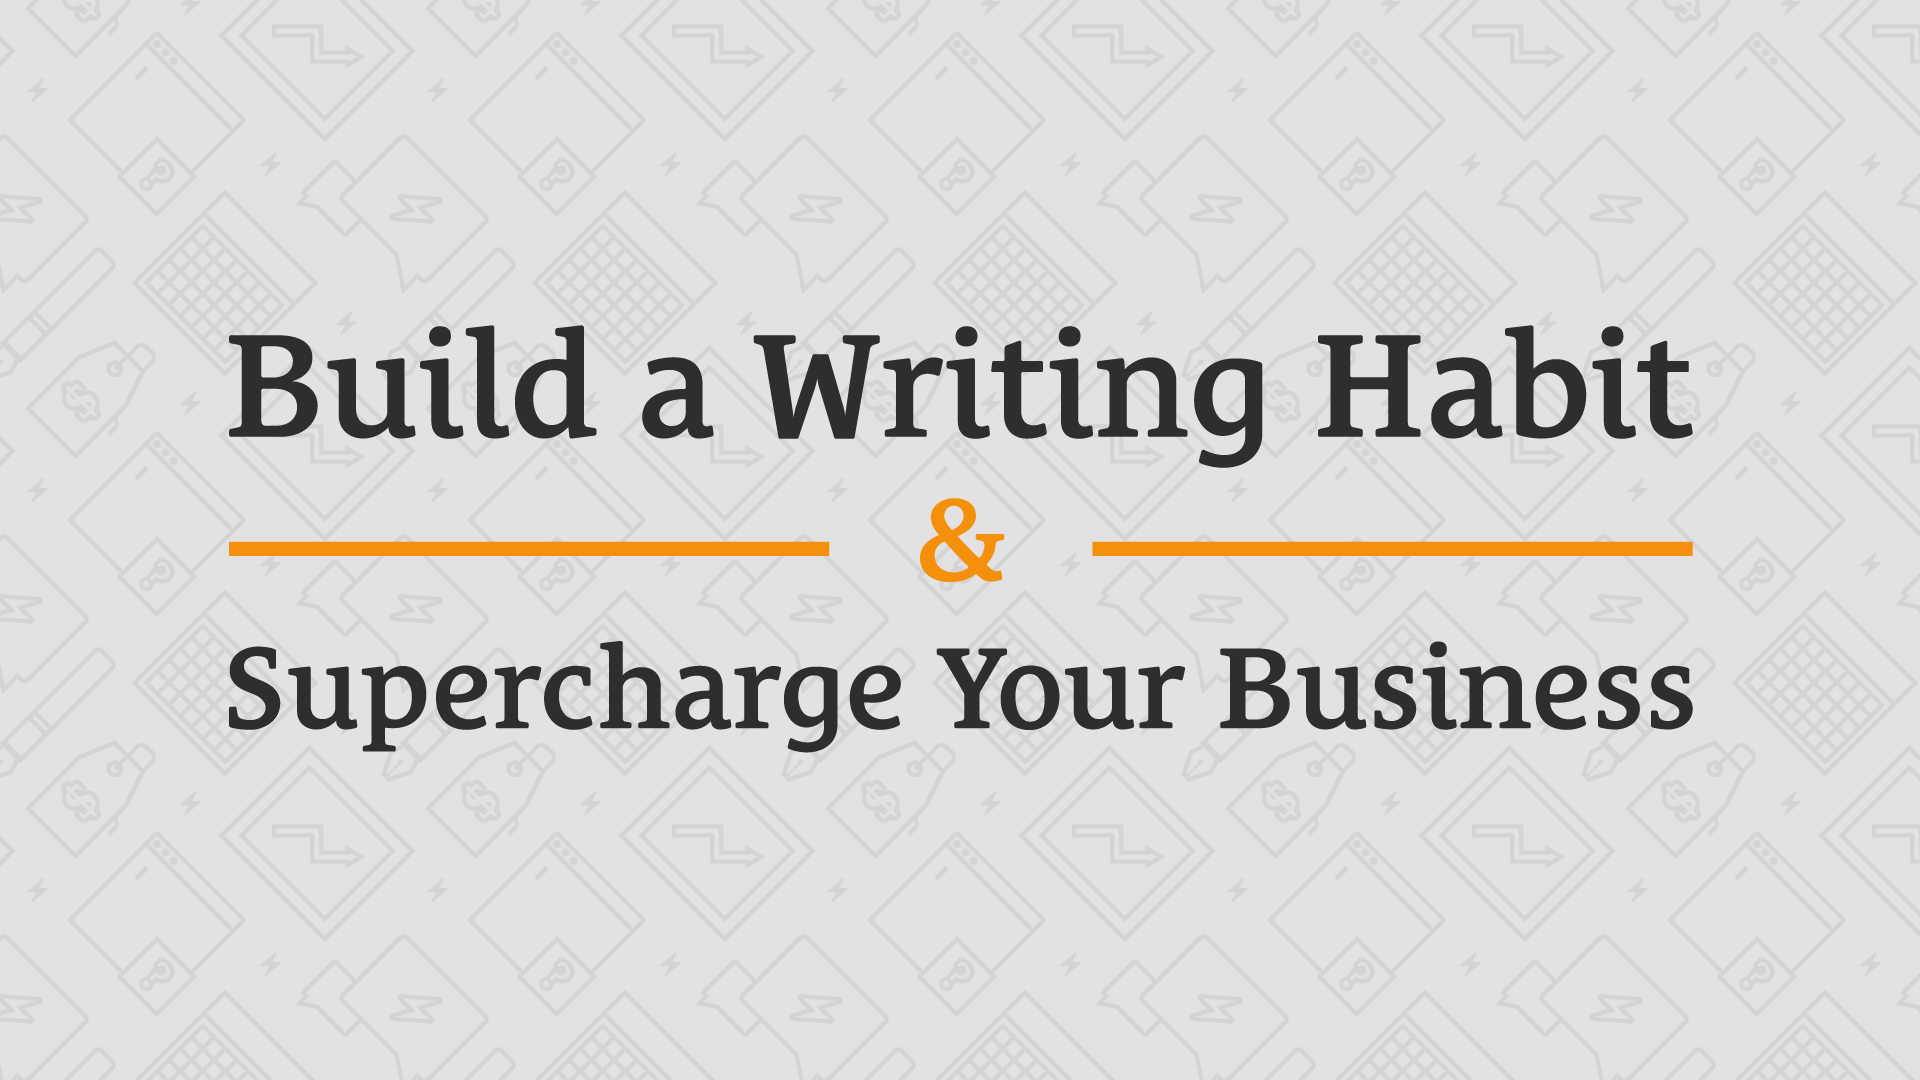 Build a Writing Habit and Supercharge Your Business